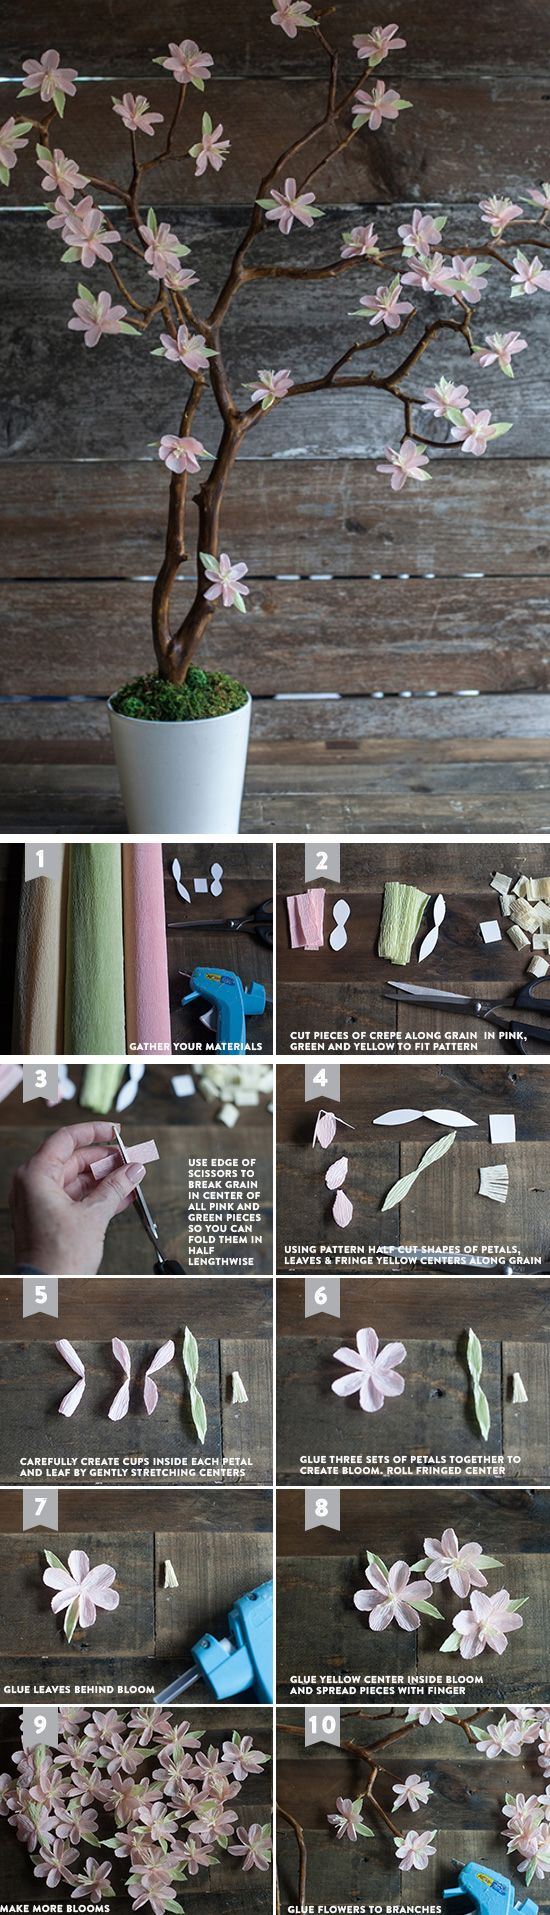 Crepe Paper Cherry Blossom Branches | Click Pic for 24 DIY Spring Wedding Ideas on a Budget | DIY Spring Wedding Decorations on a Budget